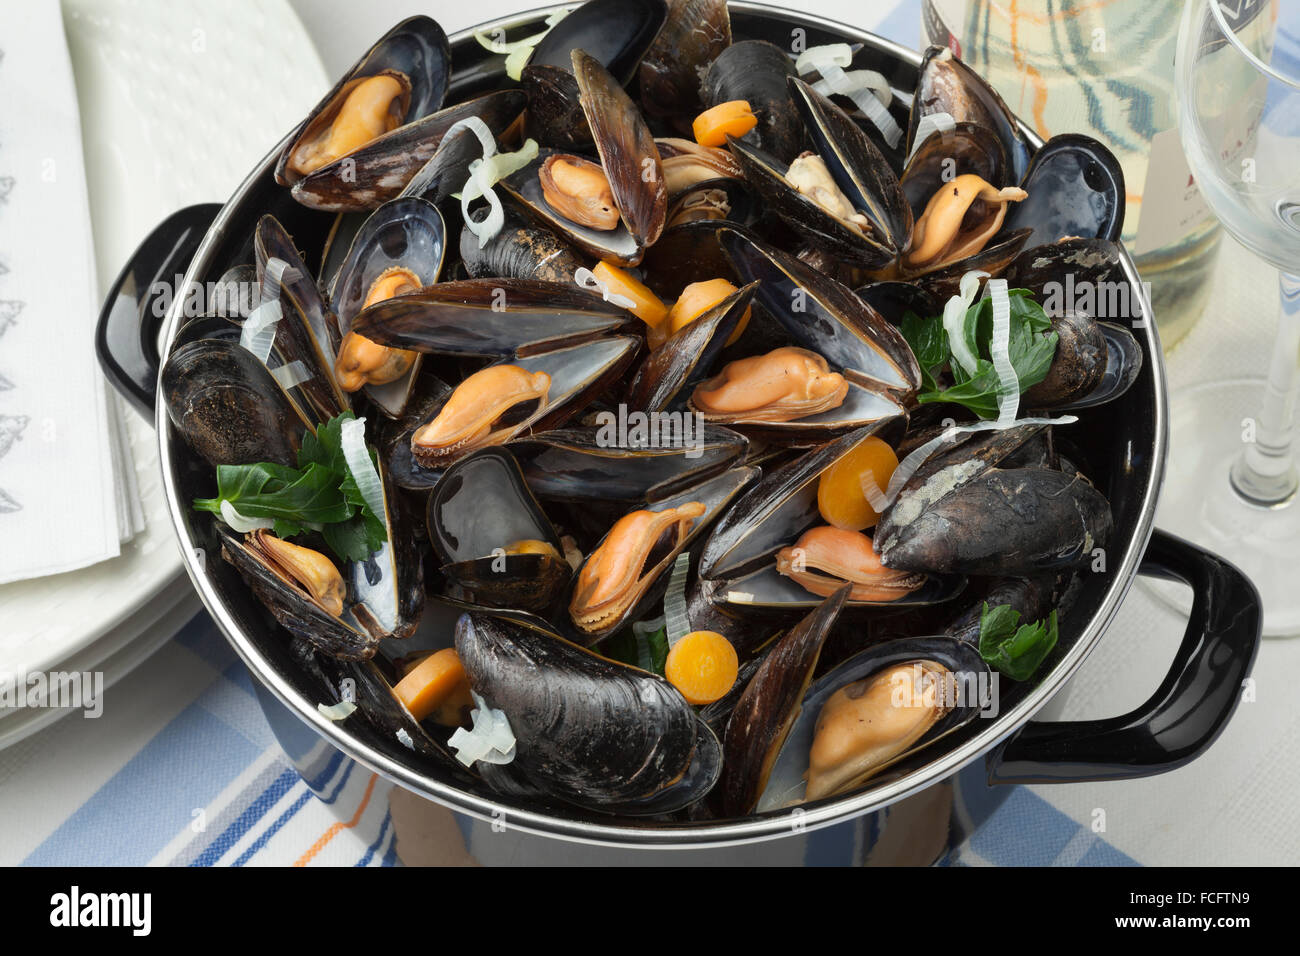 Pan with fresh cooked mussels ready to eat - Stock Image